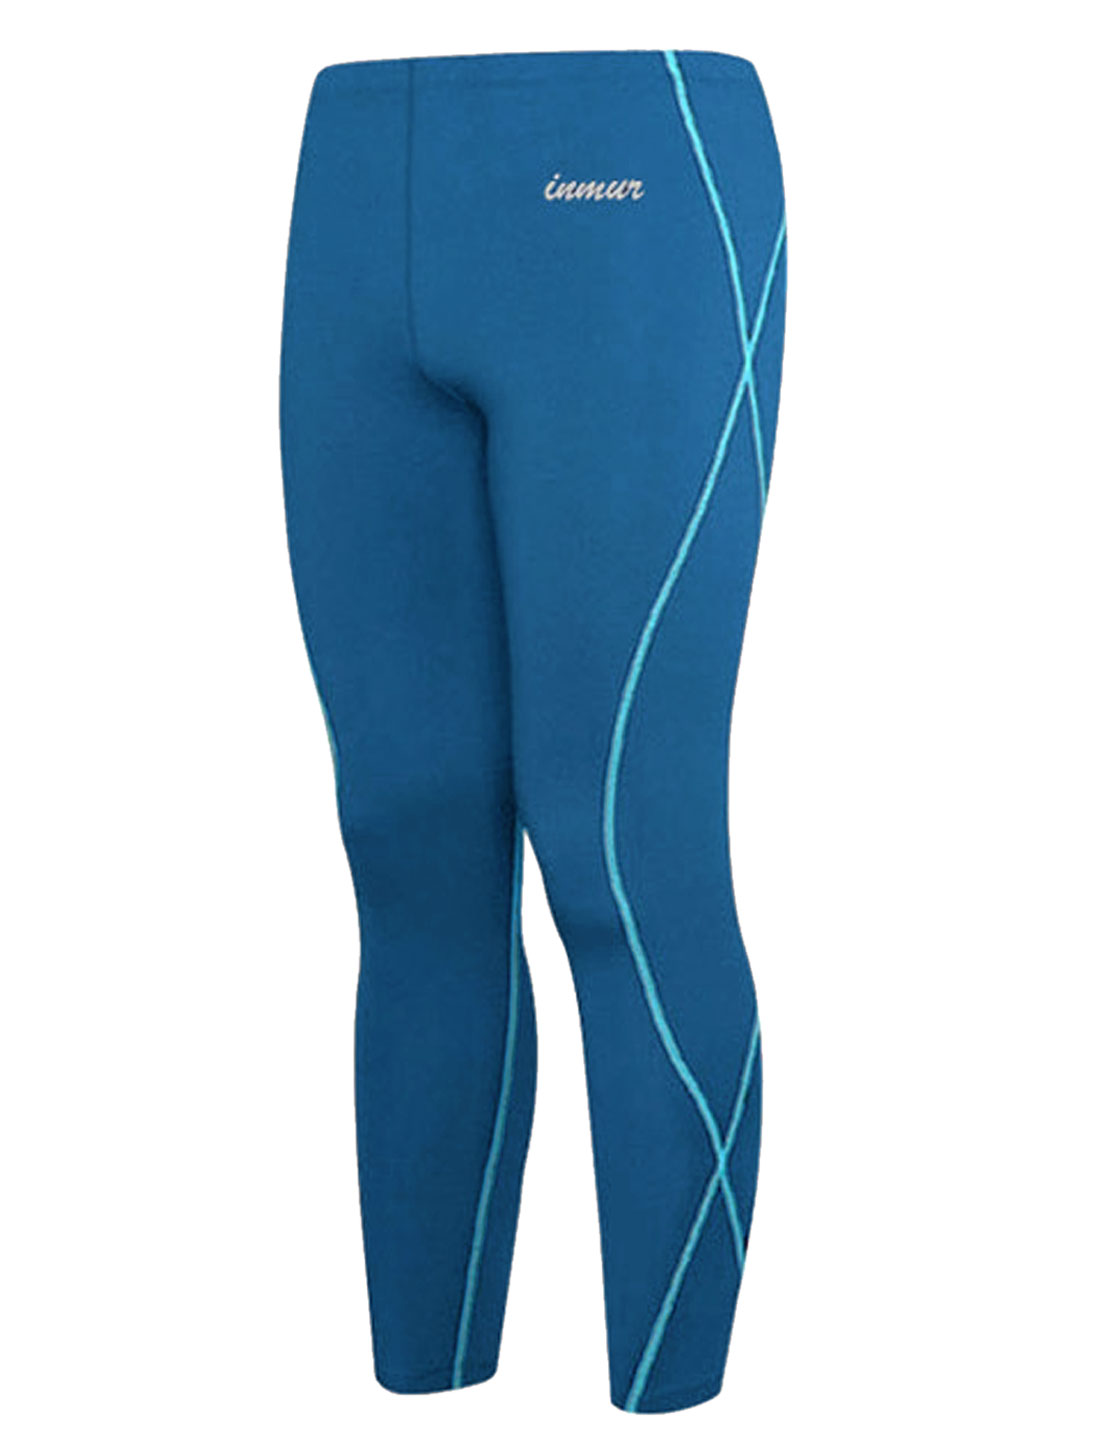 Men Stretchy Waist Letters Detail Cycling Trousers Blue W30